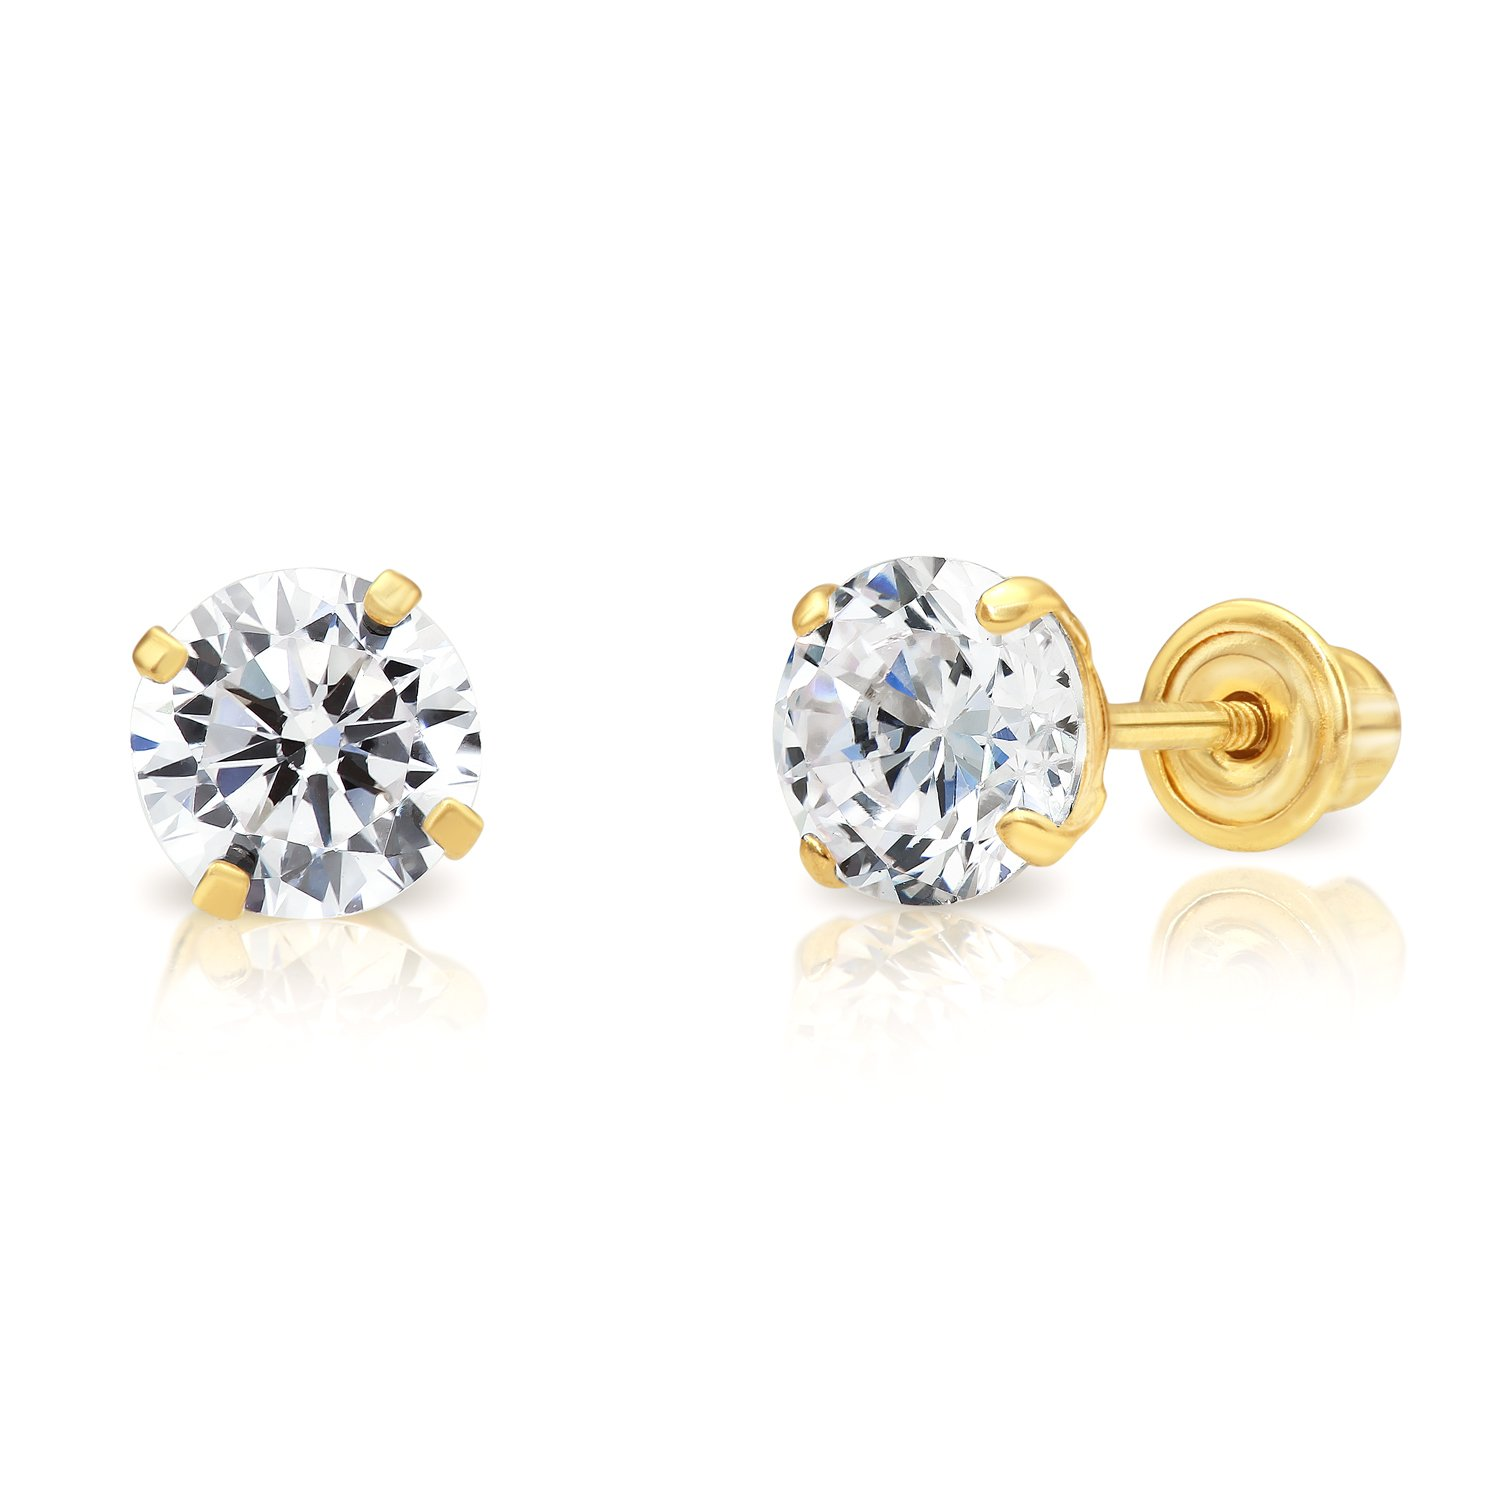 14k Yellow Gold Solitaire Cubic Zirconia Stud Earrings with Screw Backs (5mm) by Art and Molly